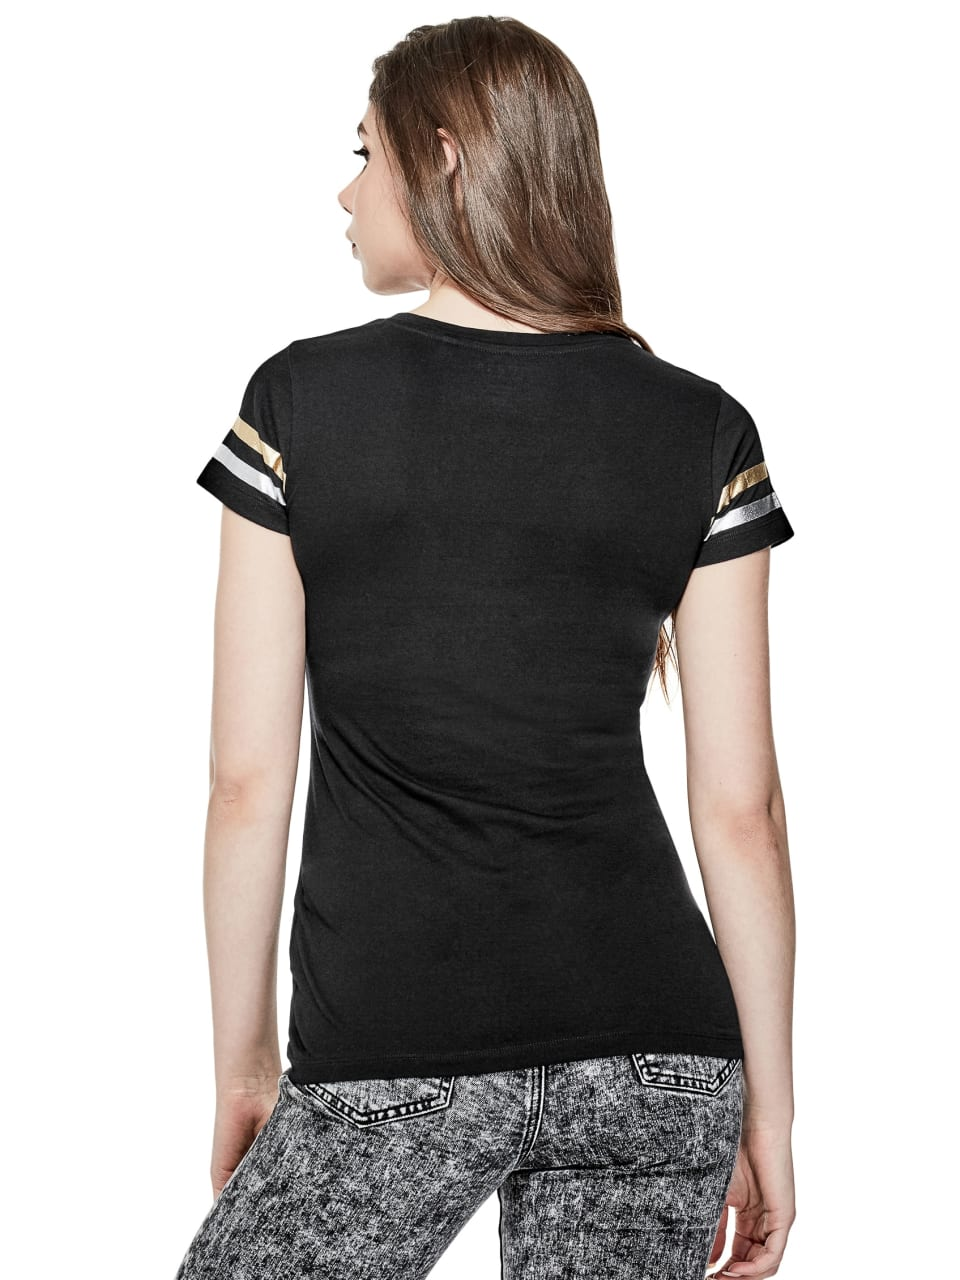 GUESS-Factory-Women-039-s-Miami-City-V-Neck-Varsity-Short-Sleeve-Tee thumbnail 8